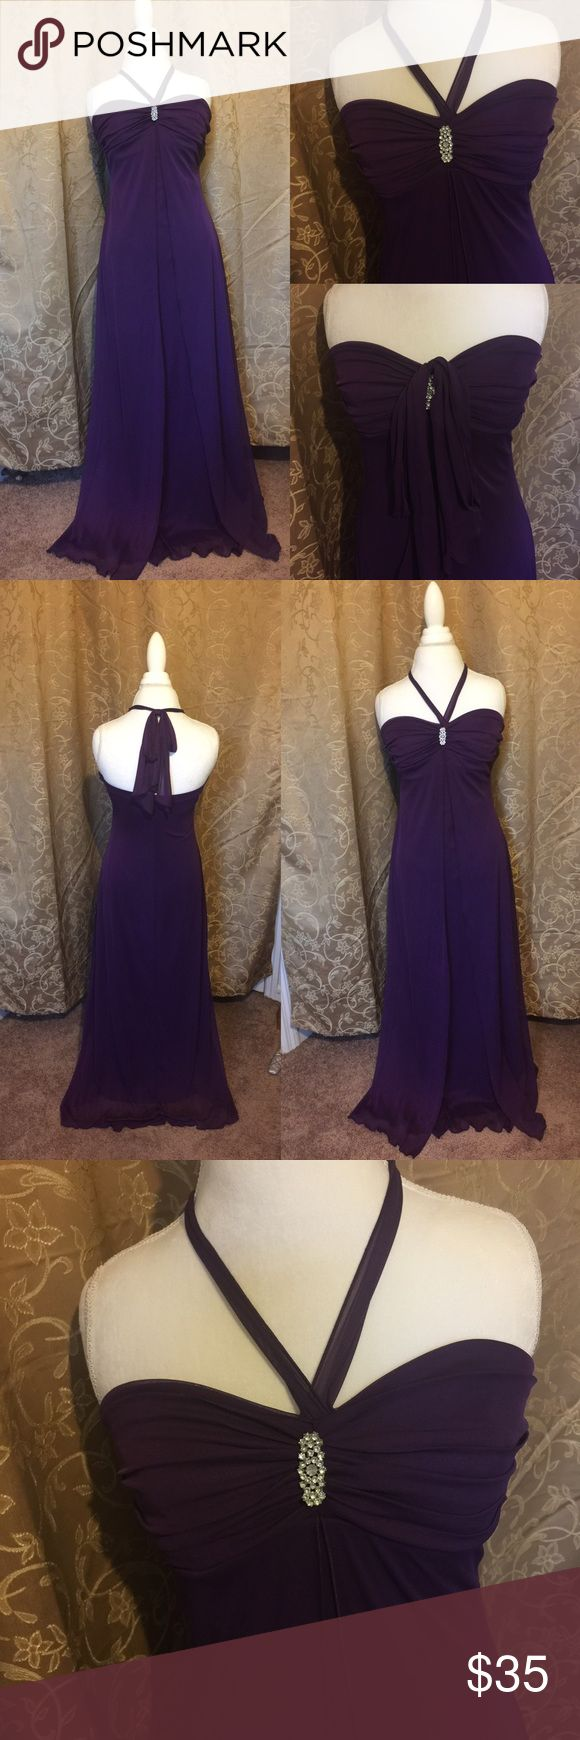 B. Smart purple long formal dress Layered and flowing, very pretty purple dress. Can be used for prom or a fancy night out on the town. Only worn once. In excellent condition. Can be worn as a strapless or tie it with a bow behind the neck. B. Smart Dresses Maxi